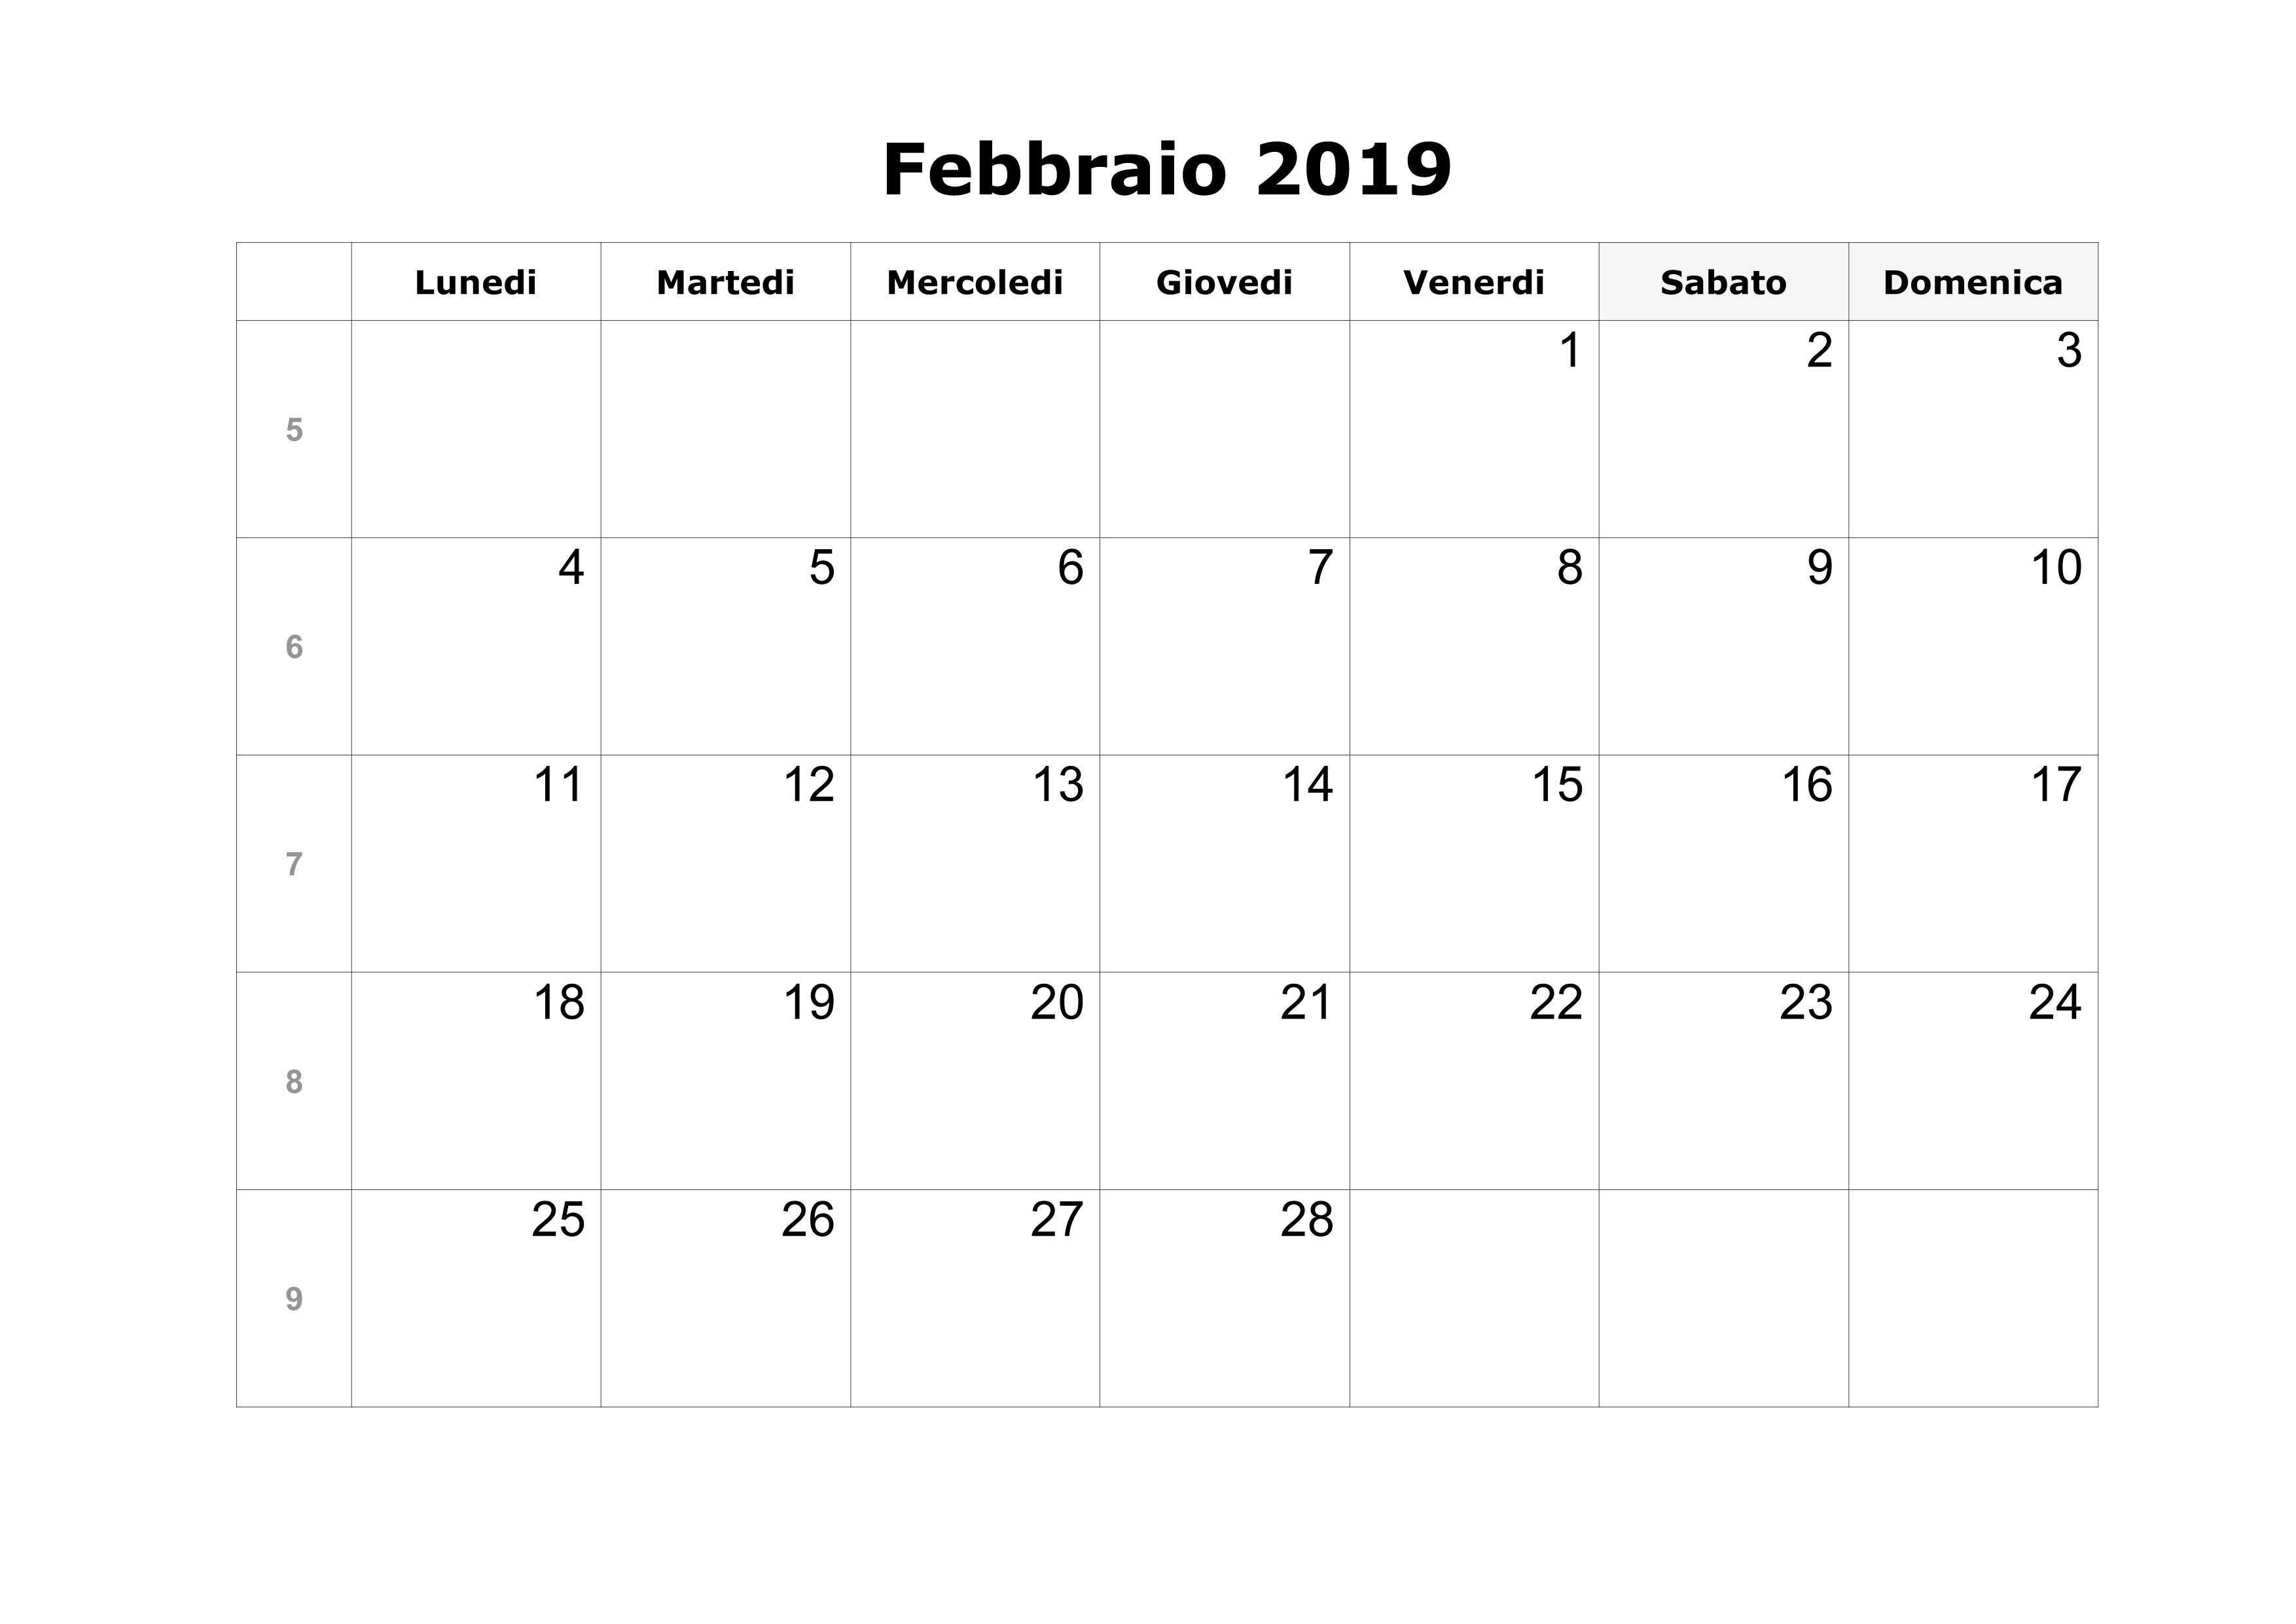 Calendario 2019 Fes Aragon Más Recientes Evaluar Calendario 2019 Lune Of Calendario 2019 Fes Aragon Más Recientes Informes Calendario Hebraico 2019